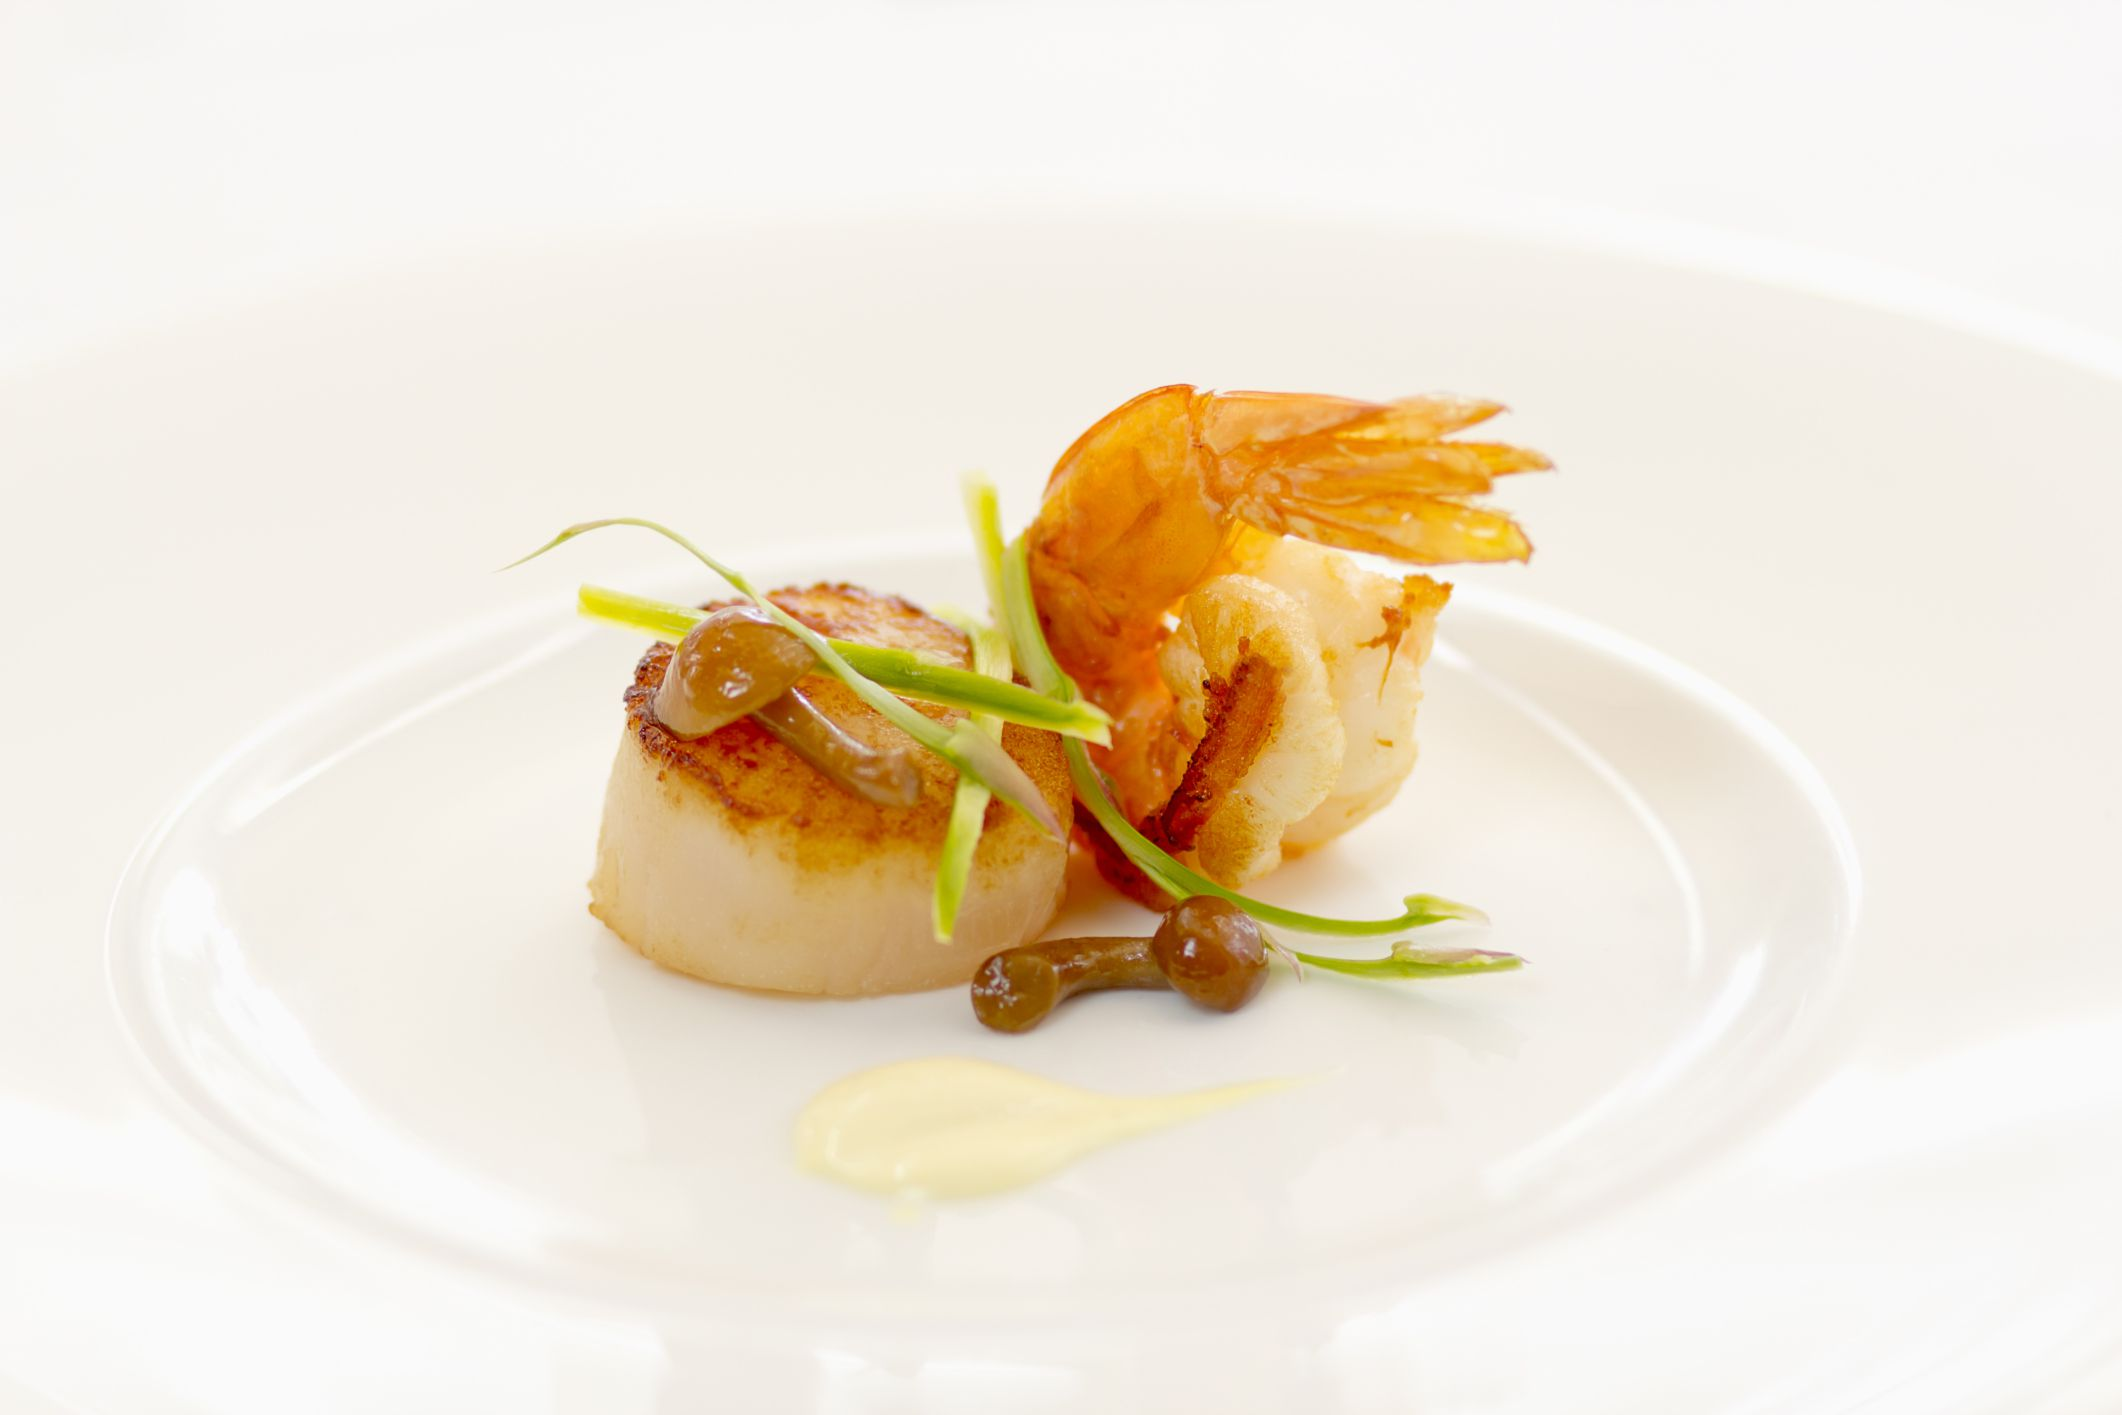 Shrimp and Scallops as Part of a Low-Cholesterol Diet